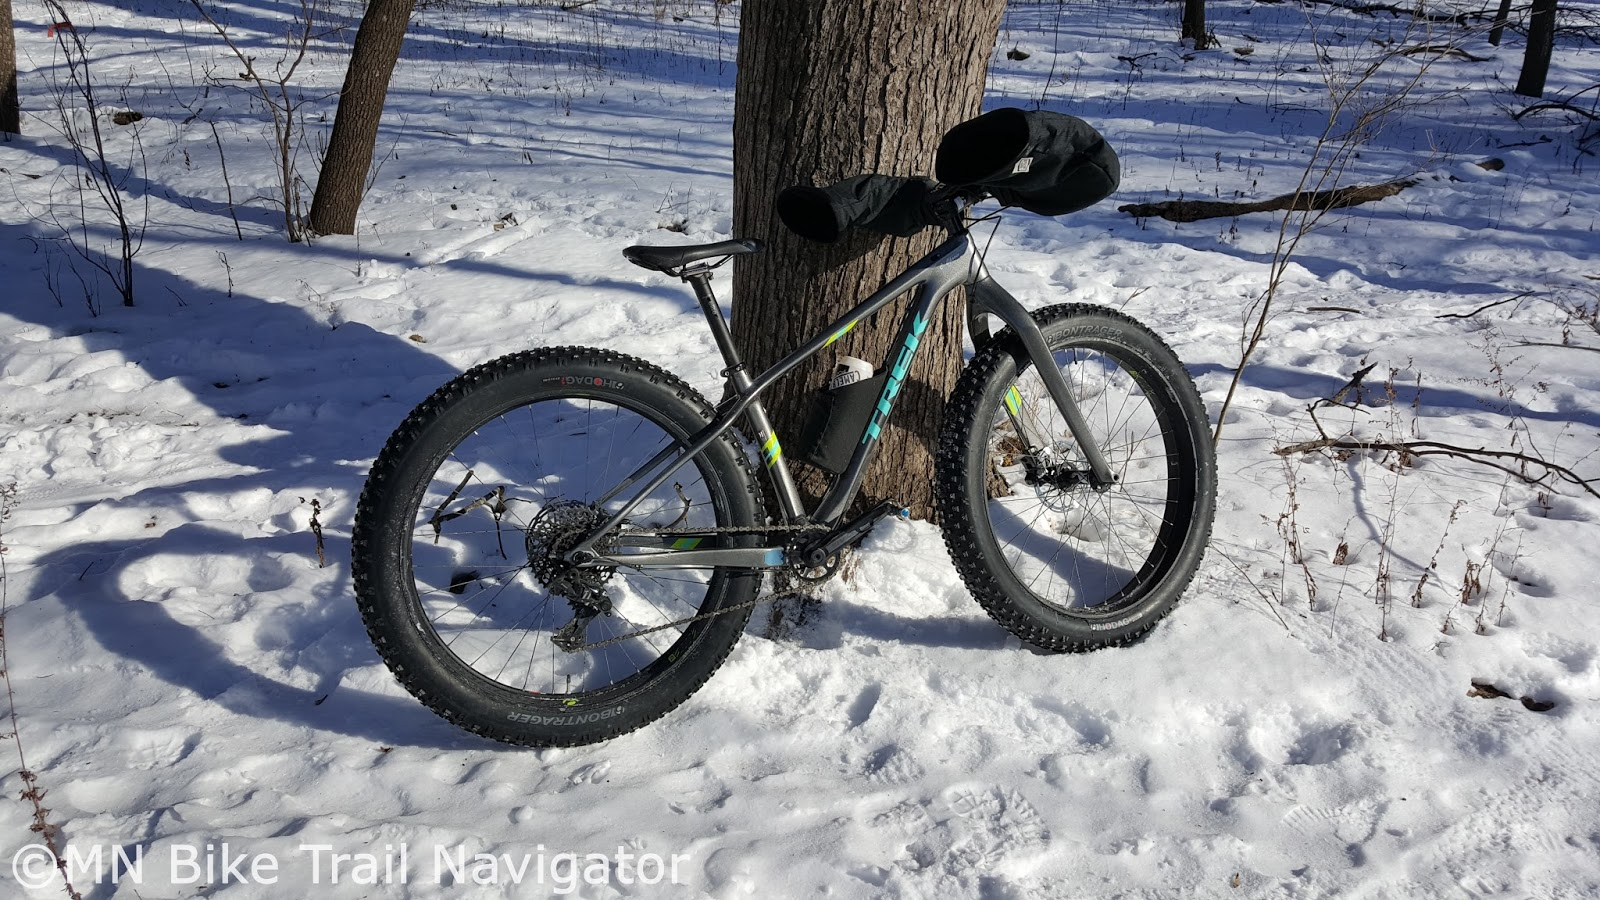 Mn Bike Trail Navigator My Favorite Winter Fatbike Gear